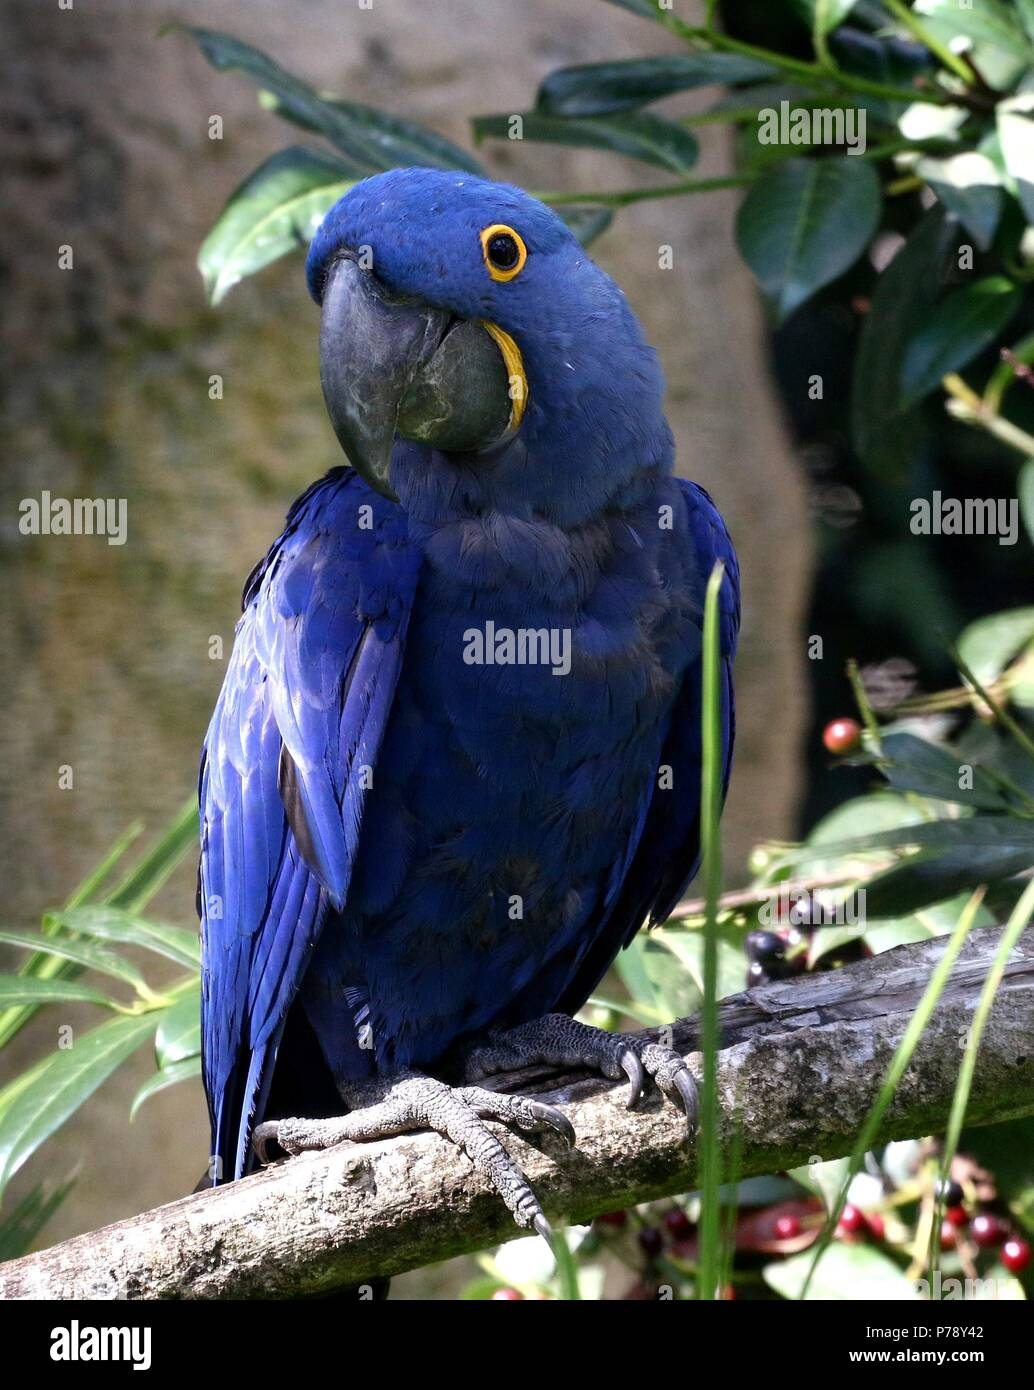 South American Hyacinth Macaw (Anodorhynchus hyacinthinus). in closeup. Stock Photo